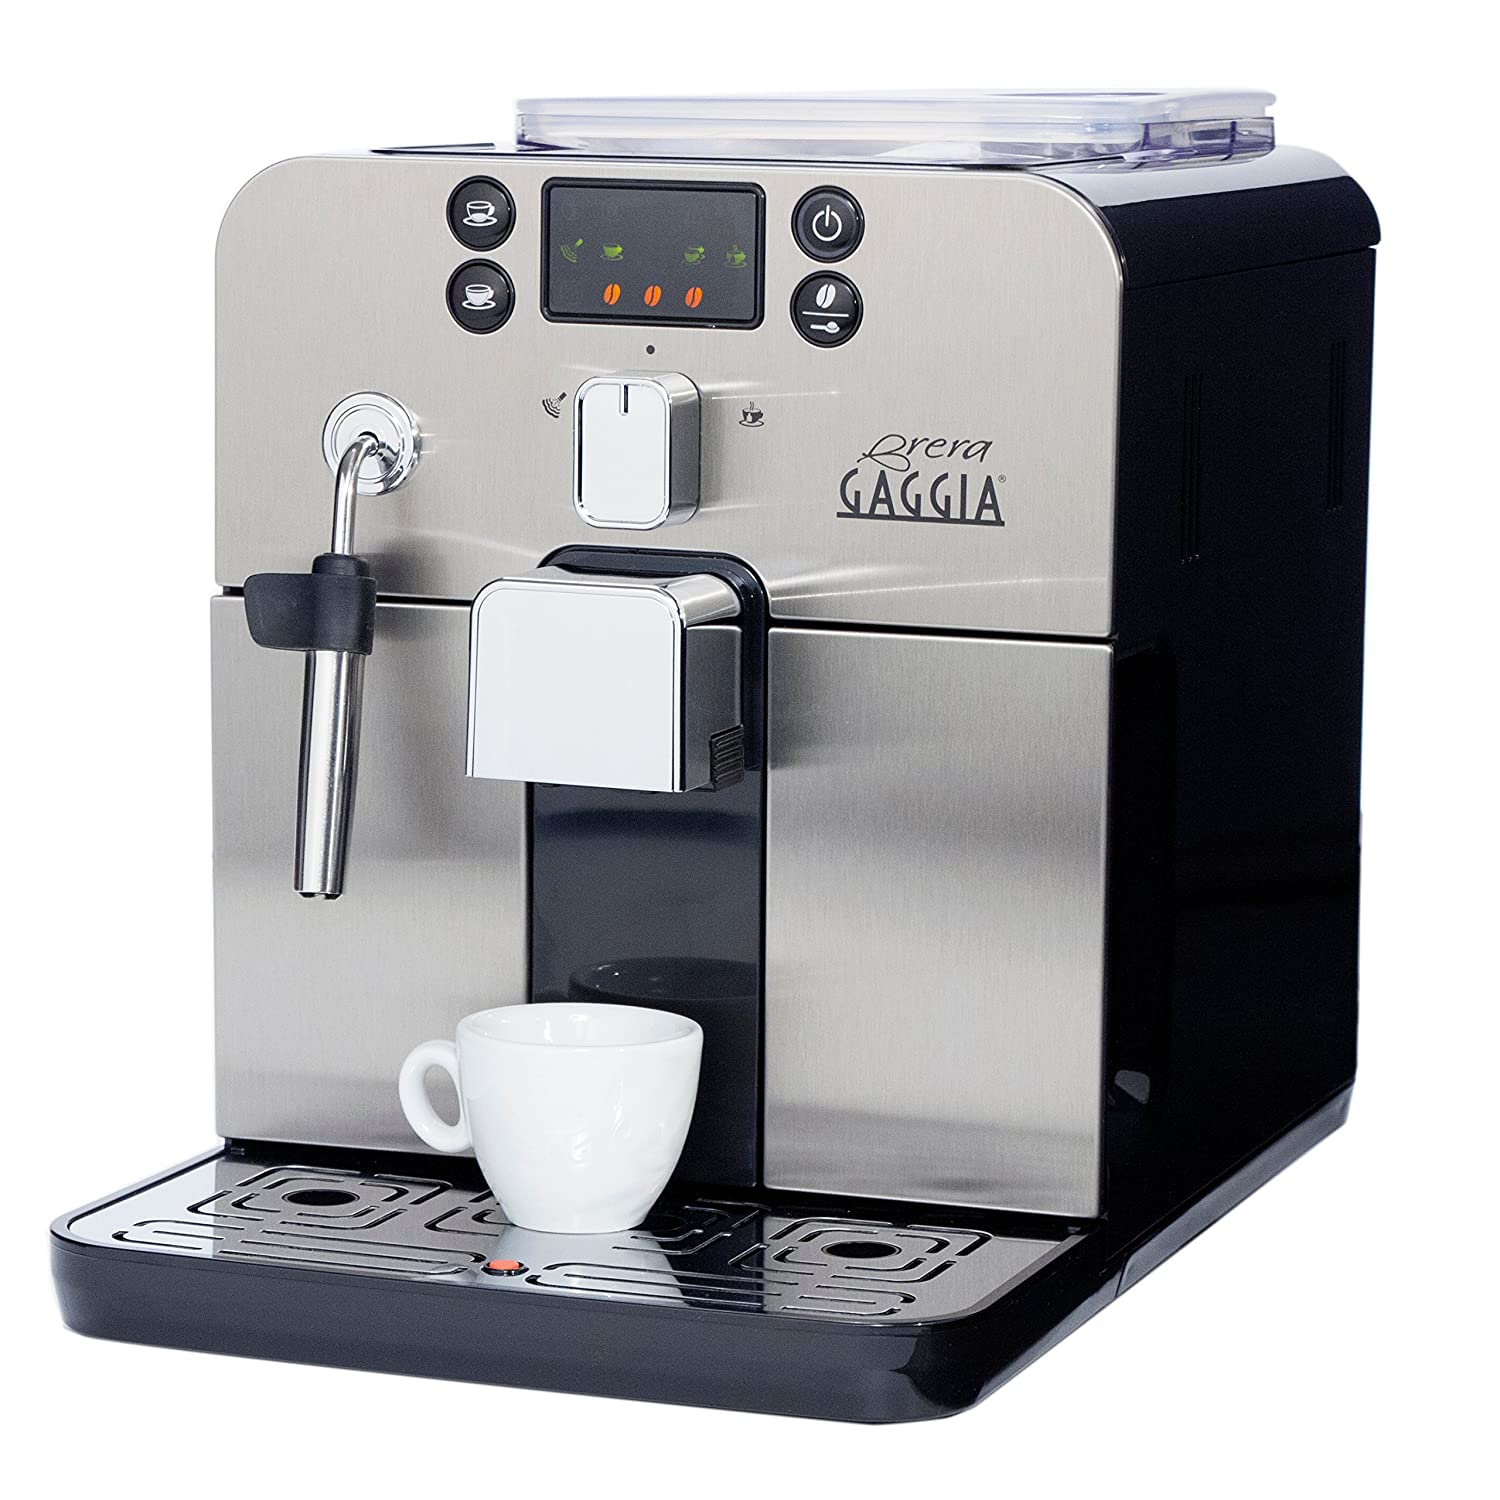 amazon com gaggia brera super automatic espresso machine in black rh amazon com Baby Gaggia Espresso Machine Gaggia Espresso Machines